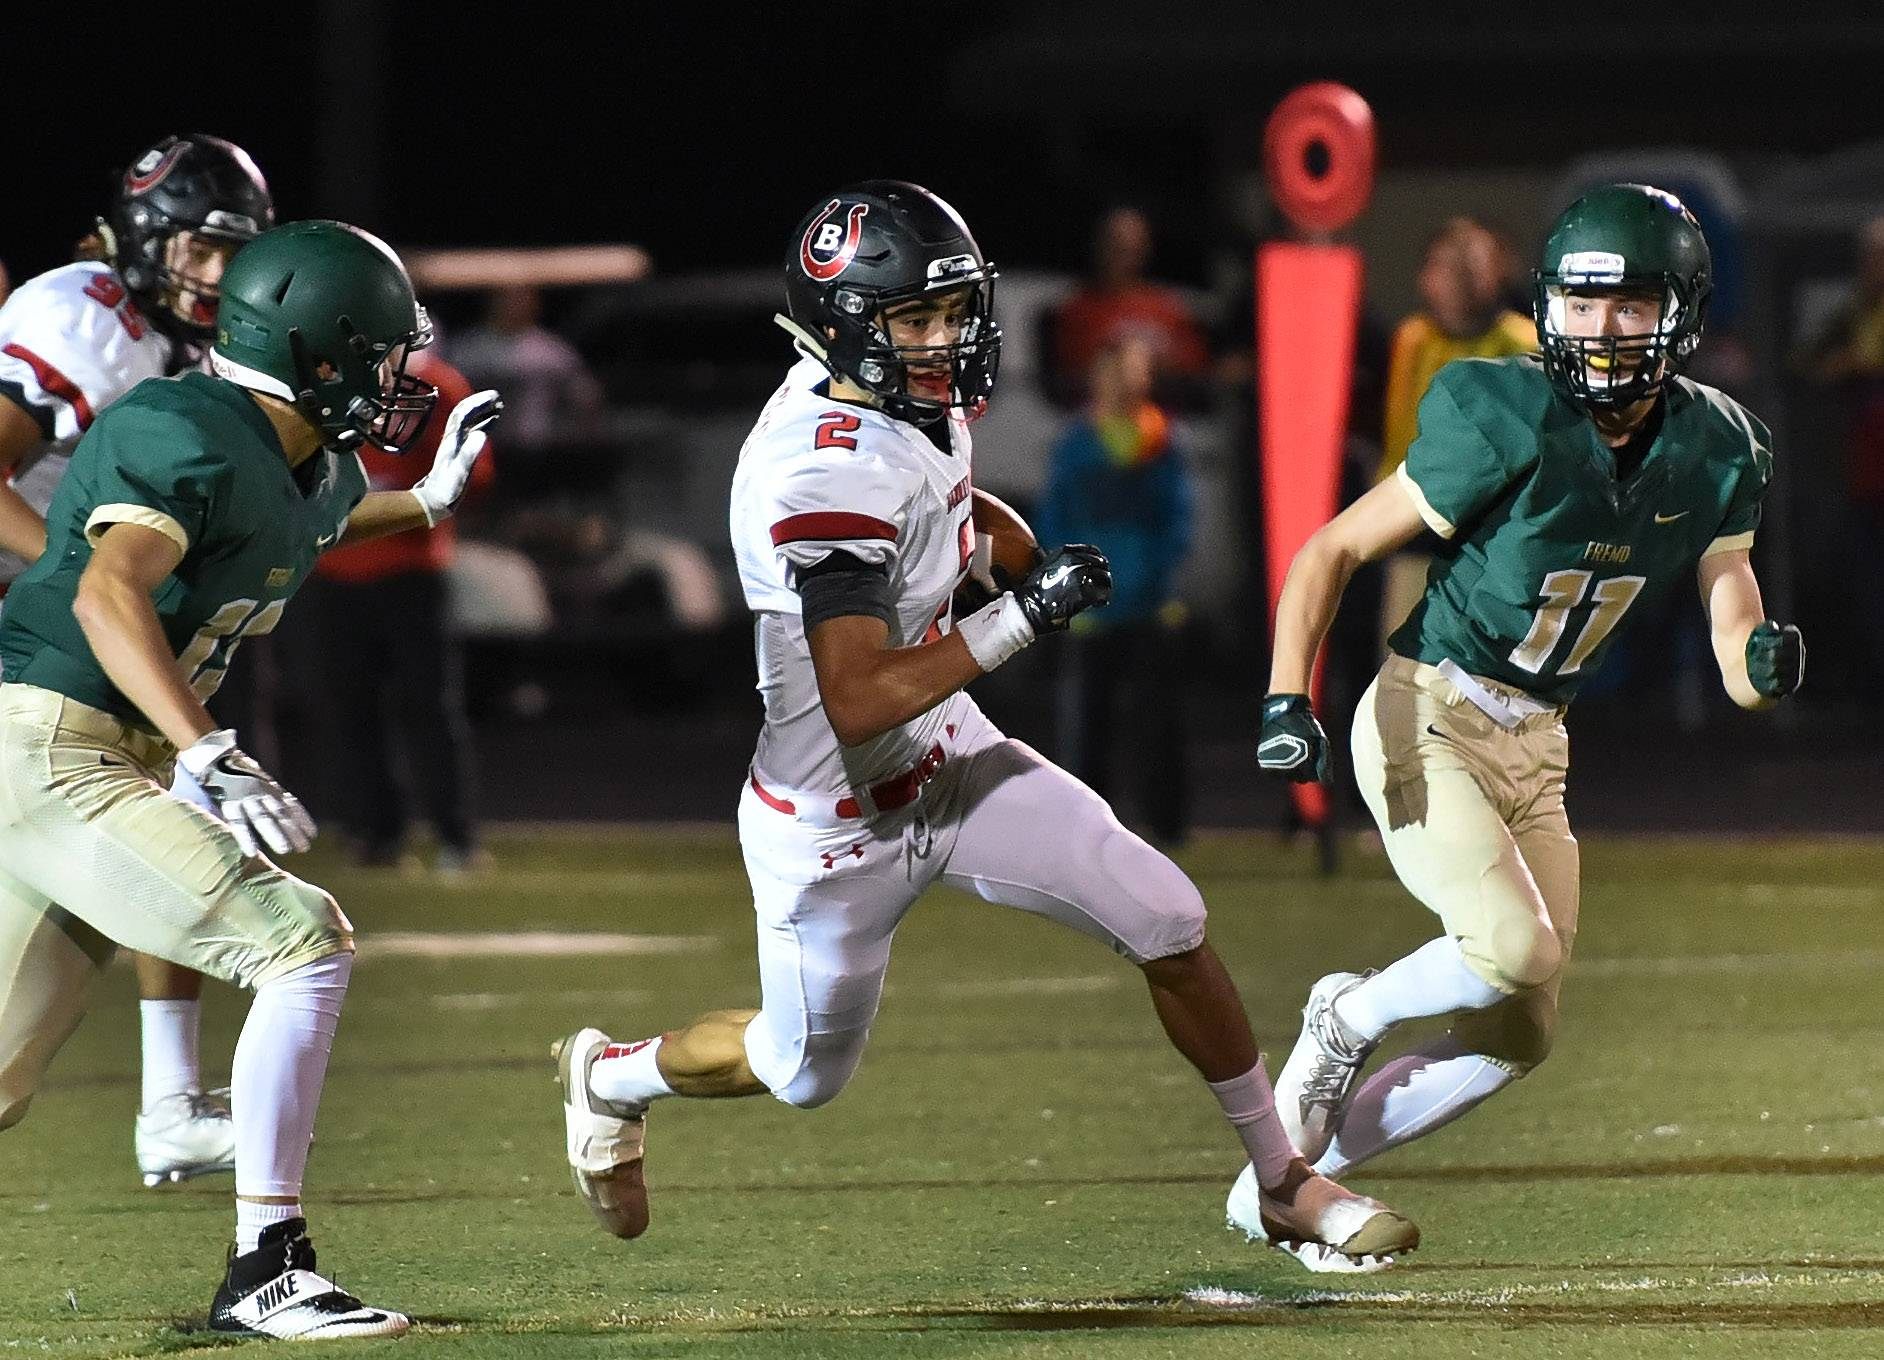 Luis Cossio, here eluding Fremd tacklers last season, figures to be part of a speedy receiving corps at Barrington this fall.